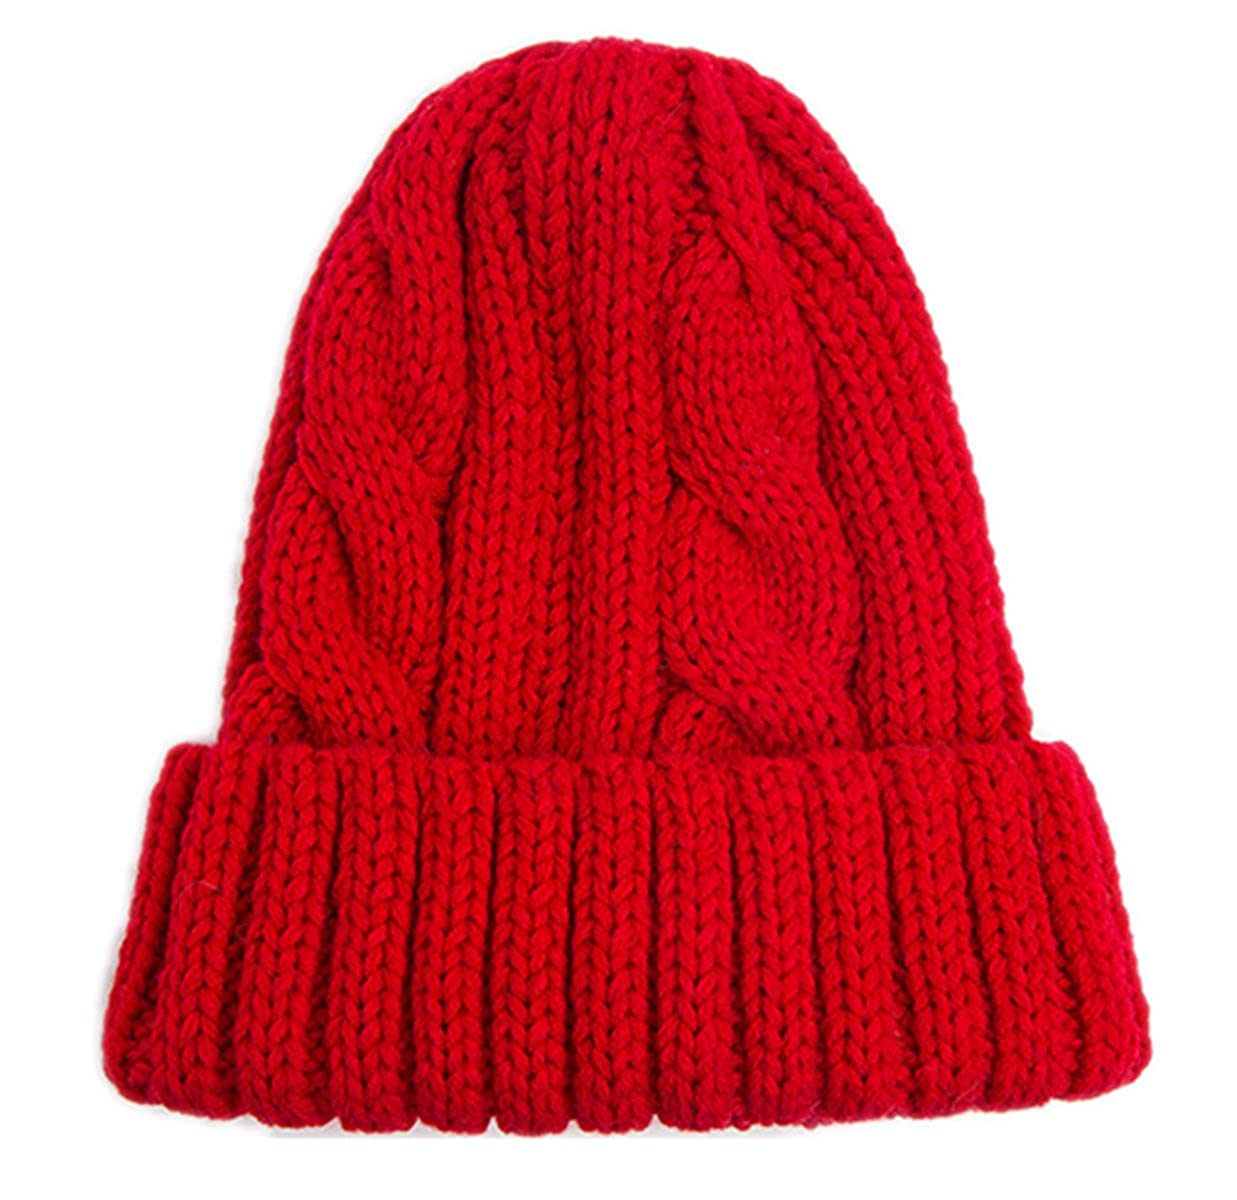 3610b665281 Spikerking Womens New Winter Hats Knitted Twist Cap Thick Beanie Hat ...